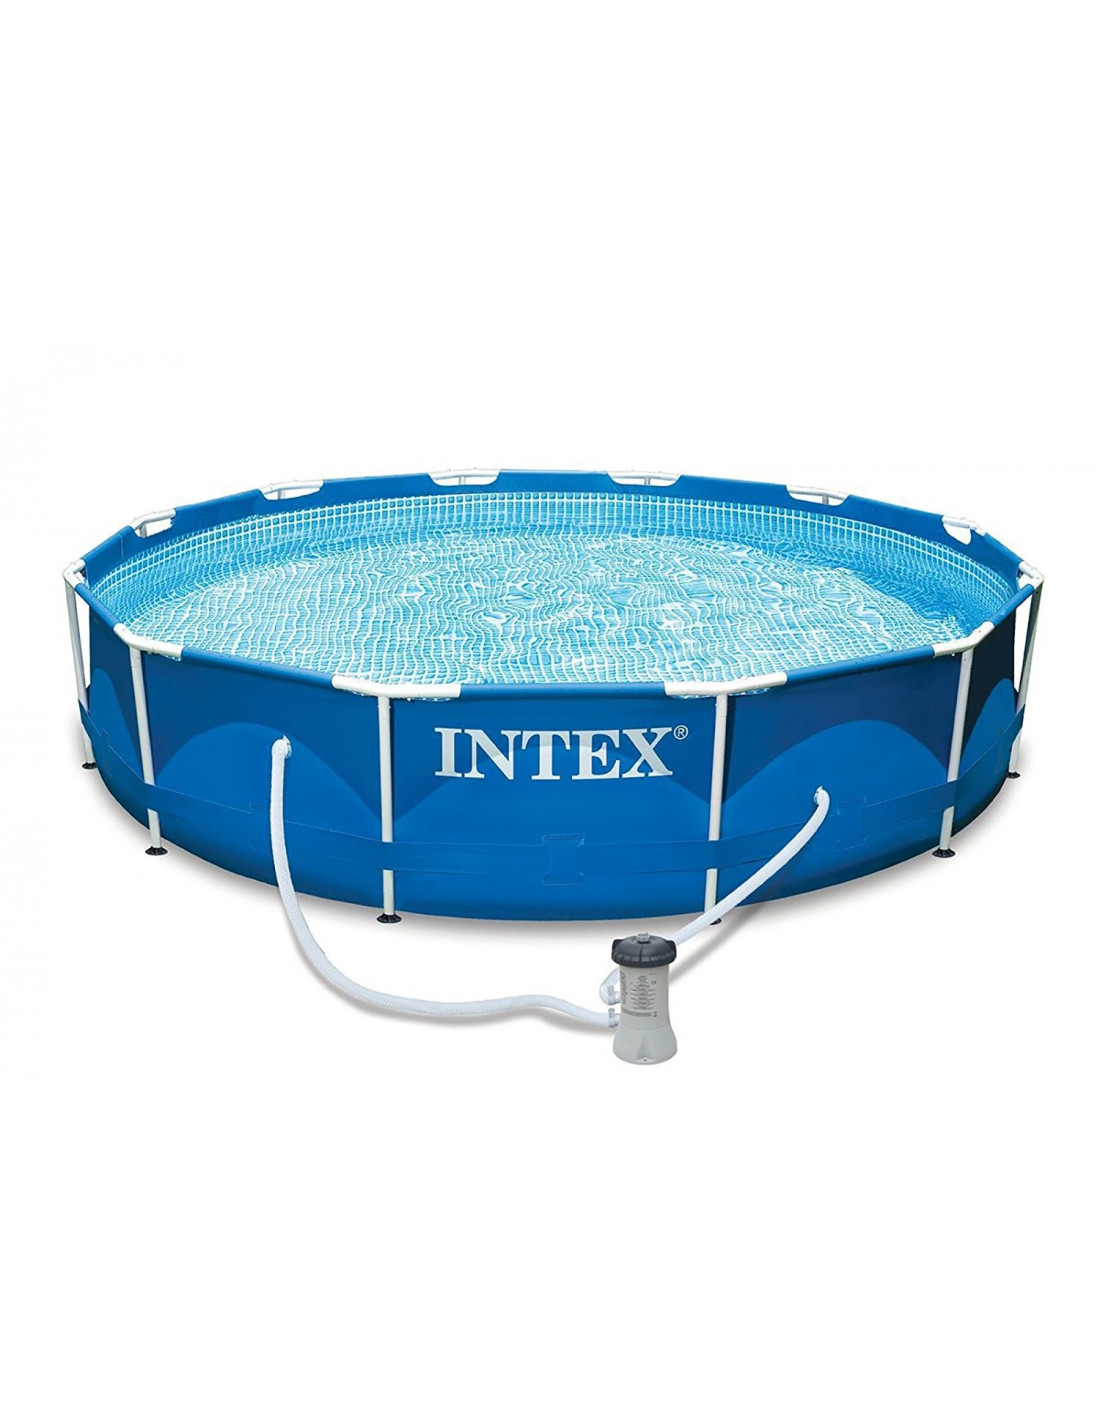 intex piscine tubulaire ronde metal frame 366 x 76 cm pompe hyper brico. Black Bedroom Furniture Sets. Home Design Ideas